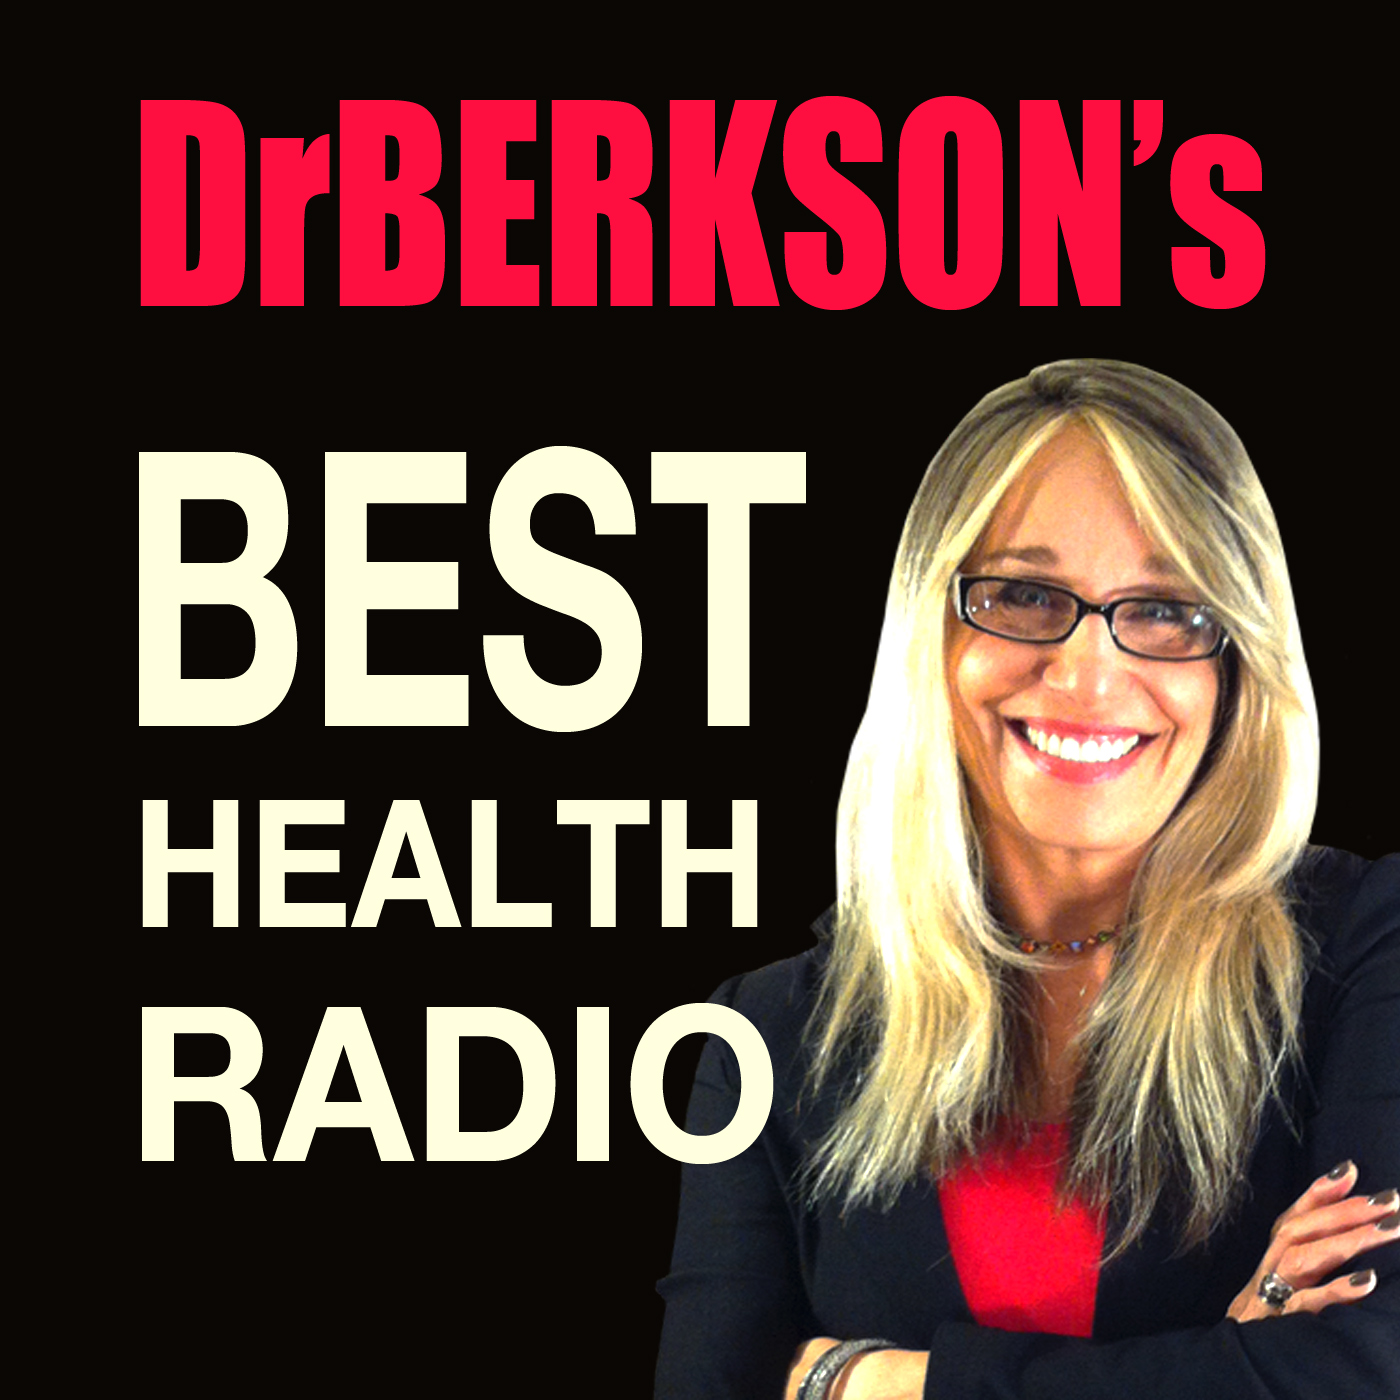 Dr. Berkson's Best Health Radio